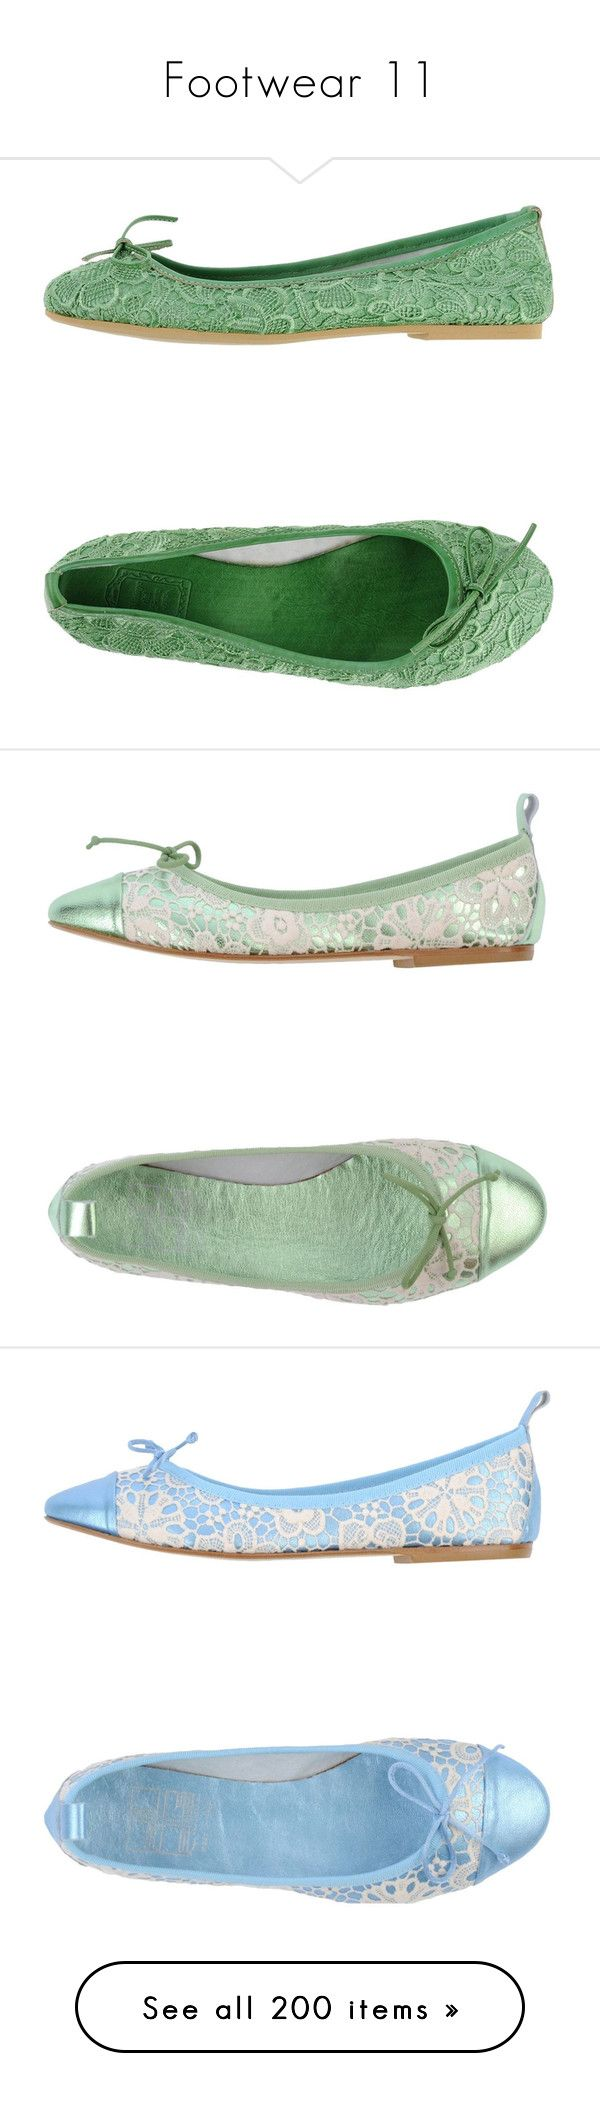 """Footwear 11"" by katiemarilexa ❤ liked on Polyvore featuring shoes, flats, light green, ballet flat shoes, bow flats, ballet shoes, flat ballet pumps, bow ballet flats, buckle flats and round toe flat shoes"